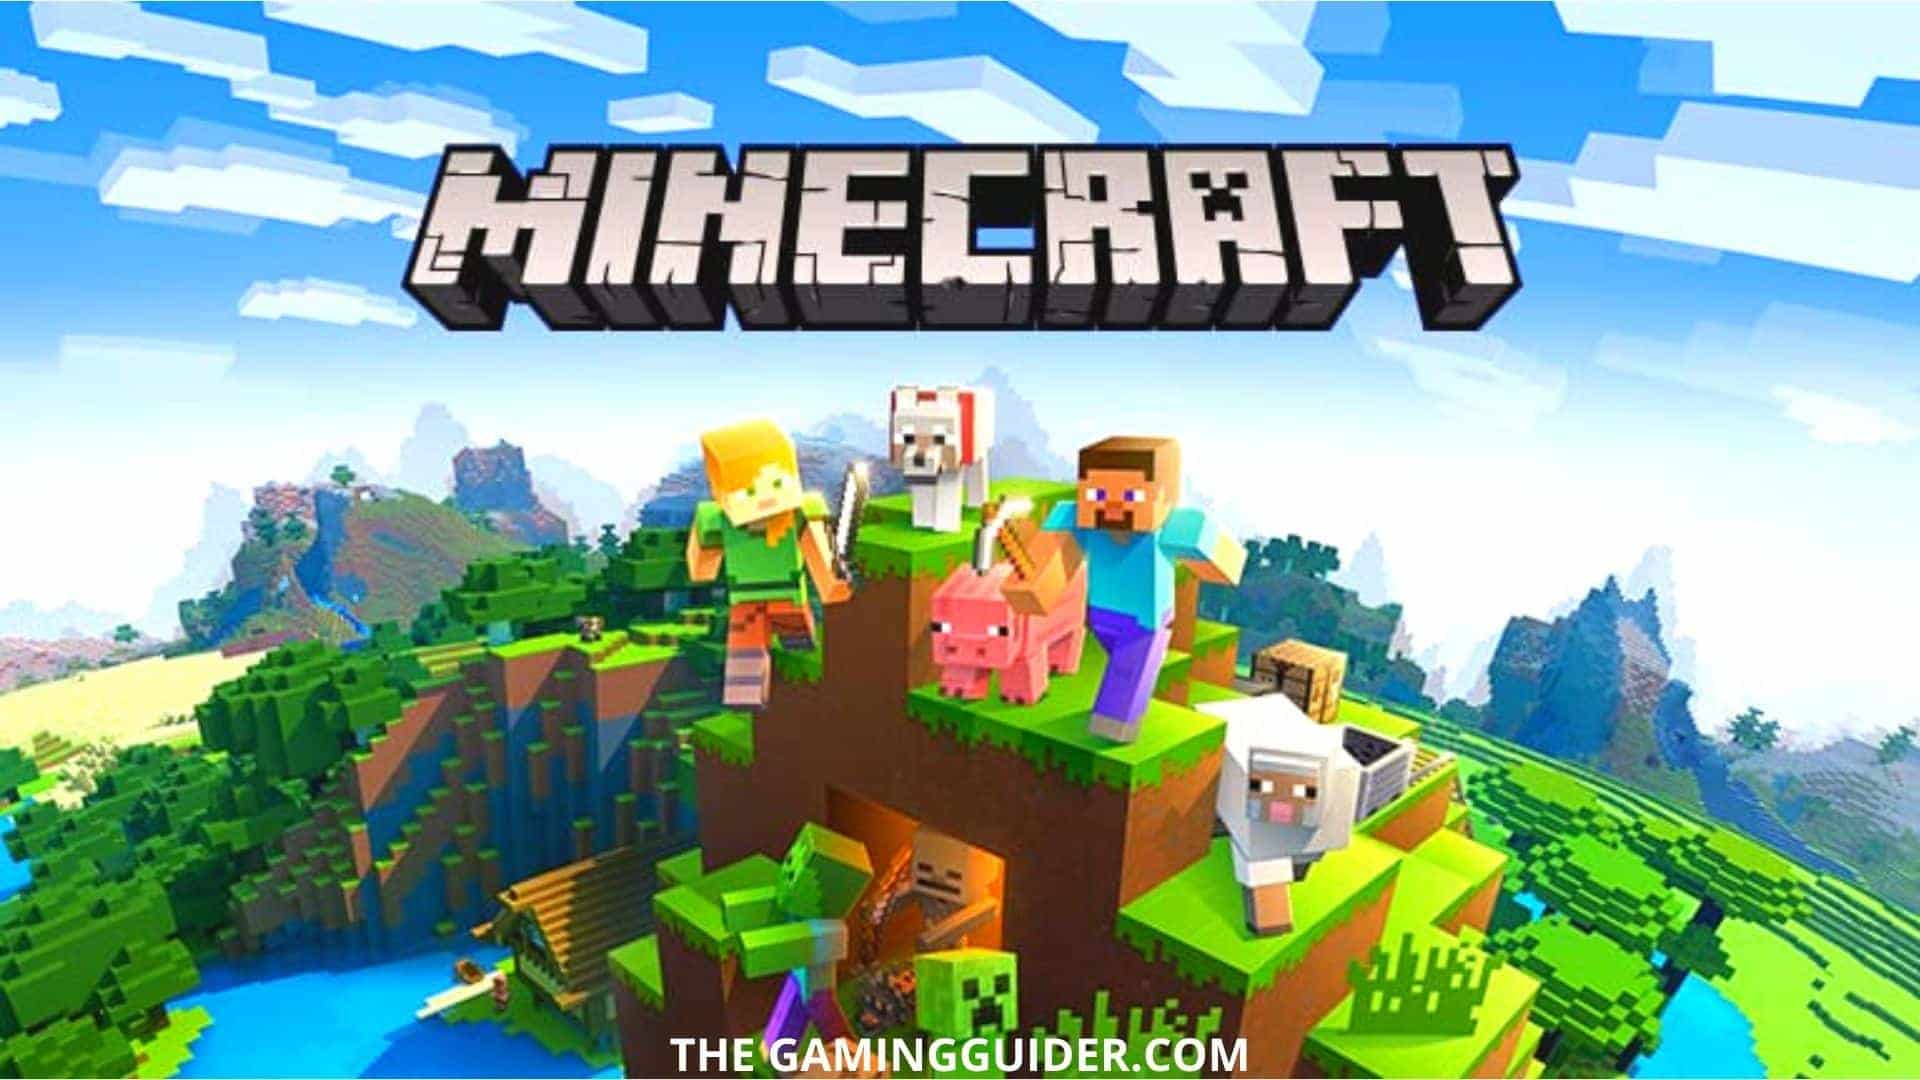 MINECRAFT - the gaming guider.com